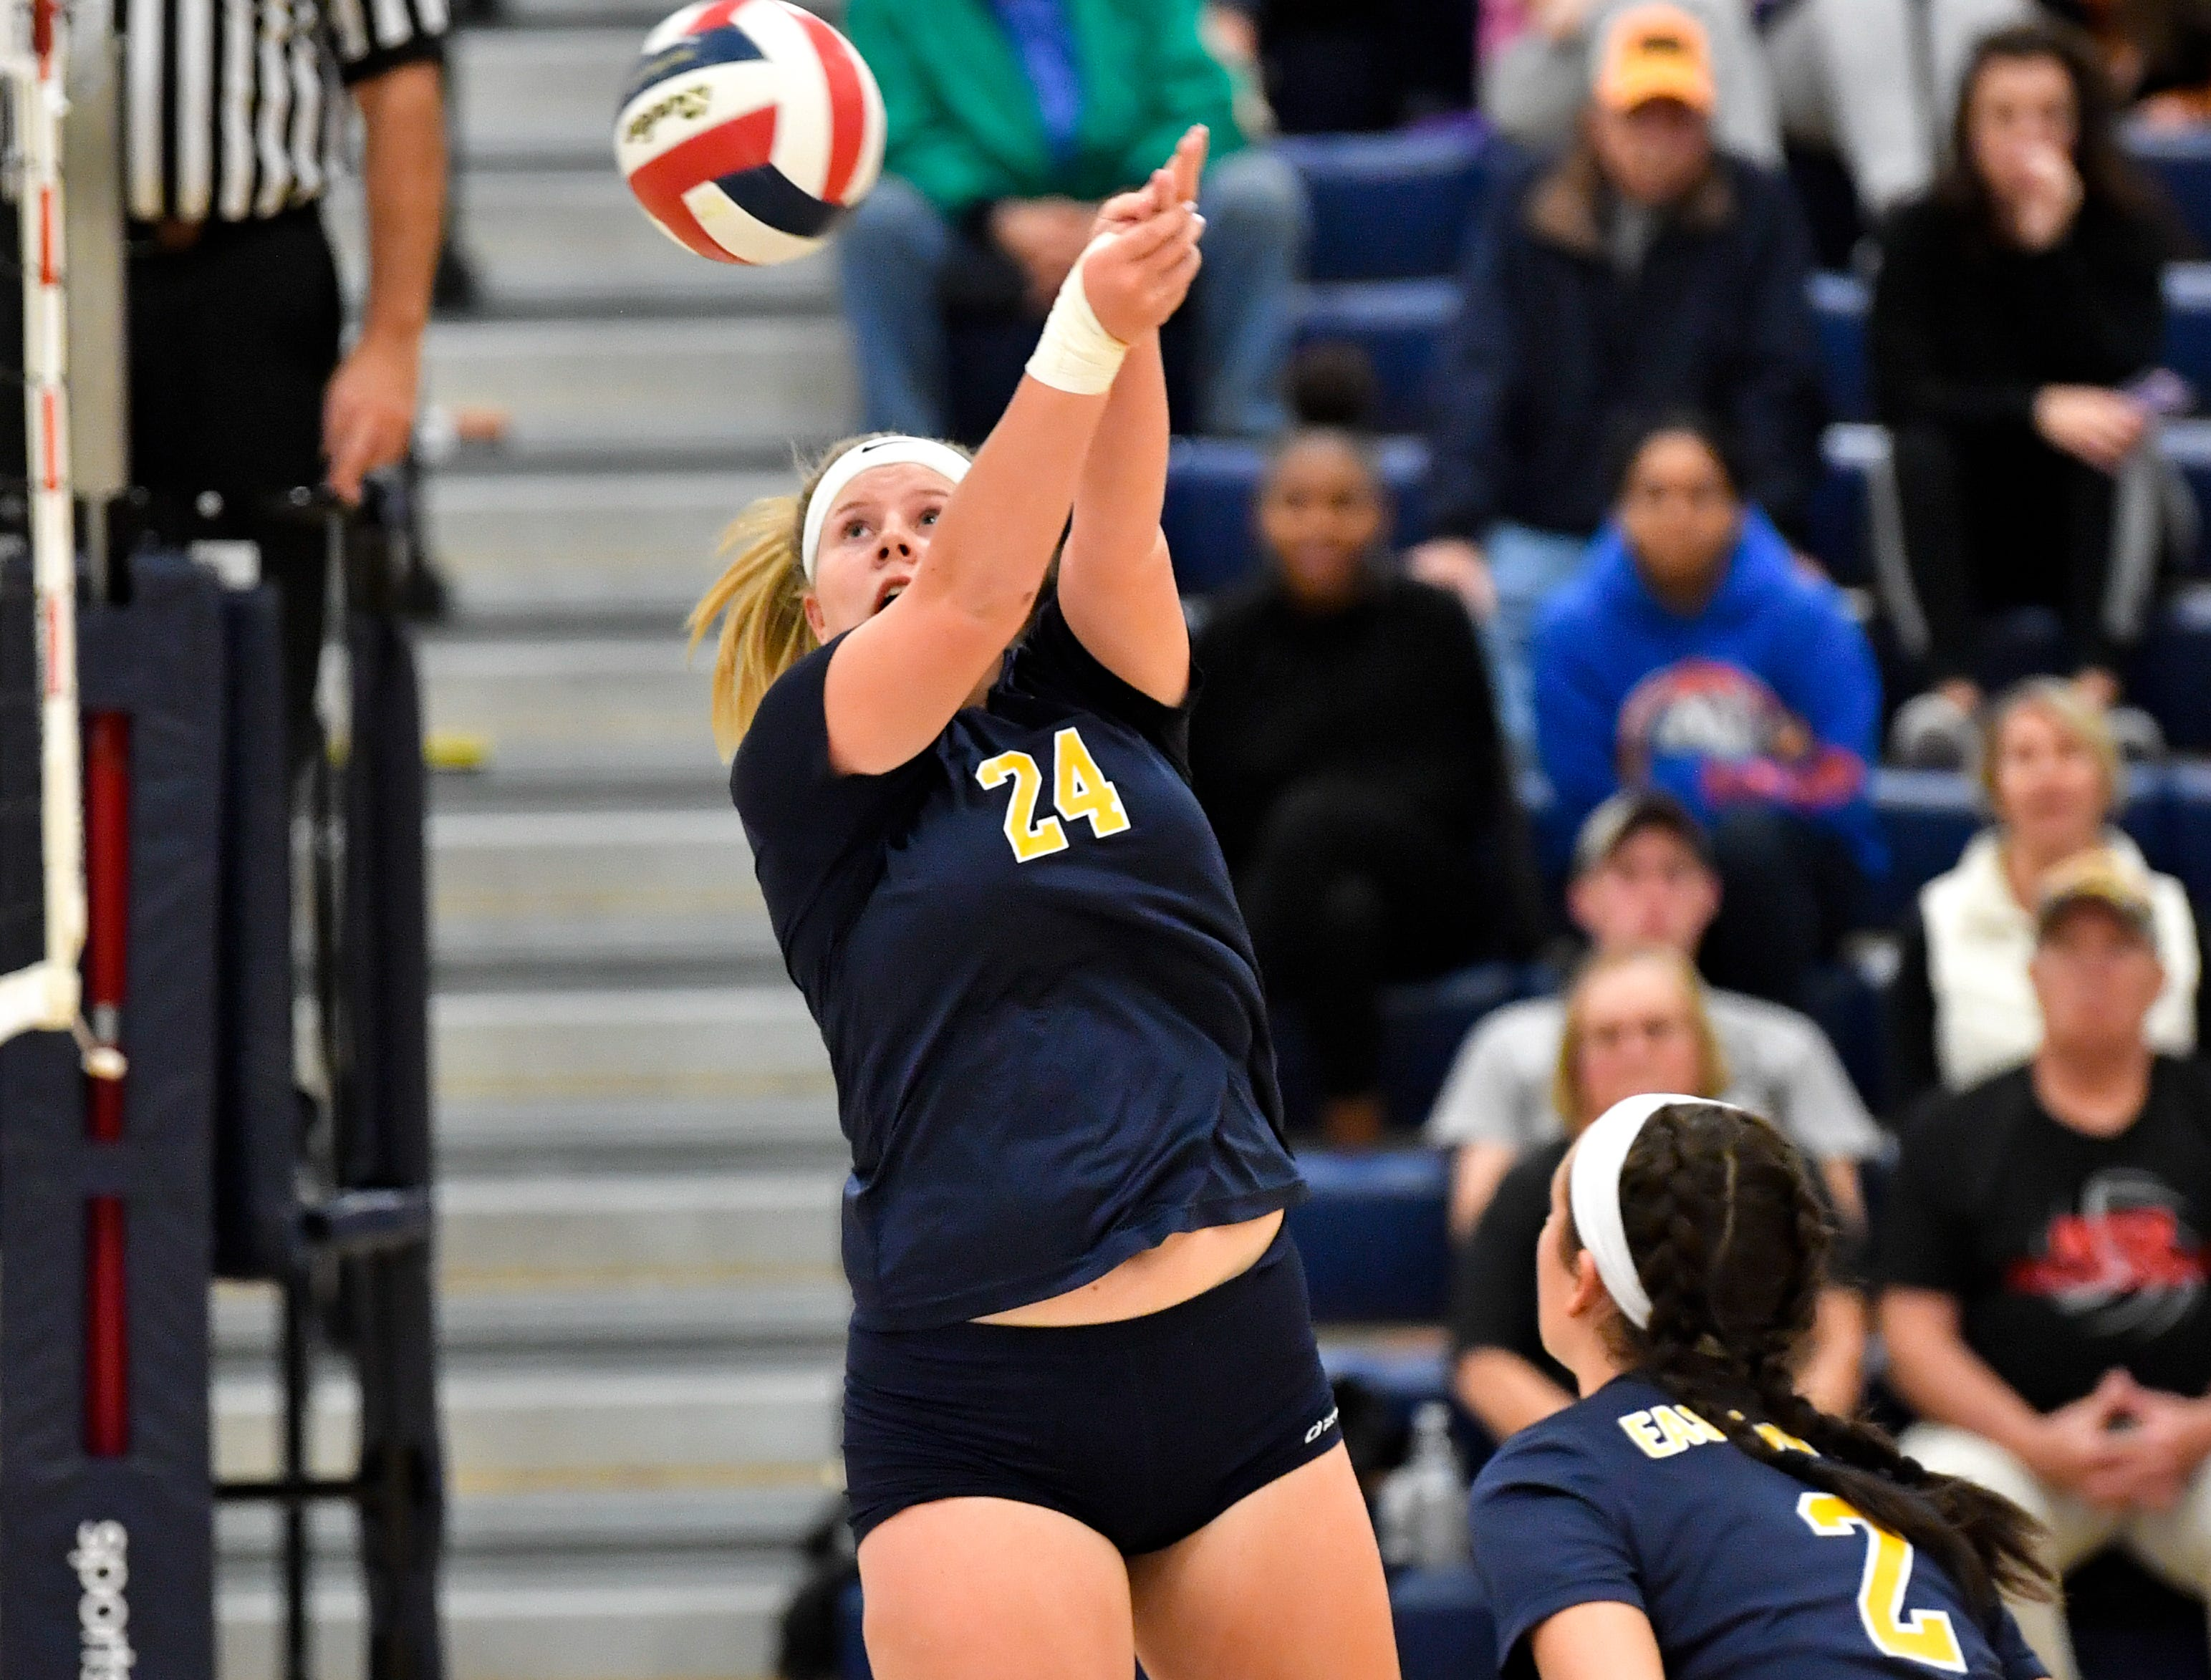 Morgan Winter (24) hits the ball over during the District 3 Class 3A girls' volleyball quarterfinals between West York and Eastern York at West York High School, October 30, 2018. The Bulldogs defeated the Golden Knights 3-0.